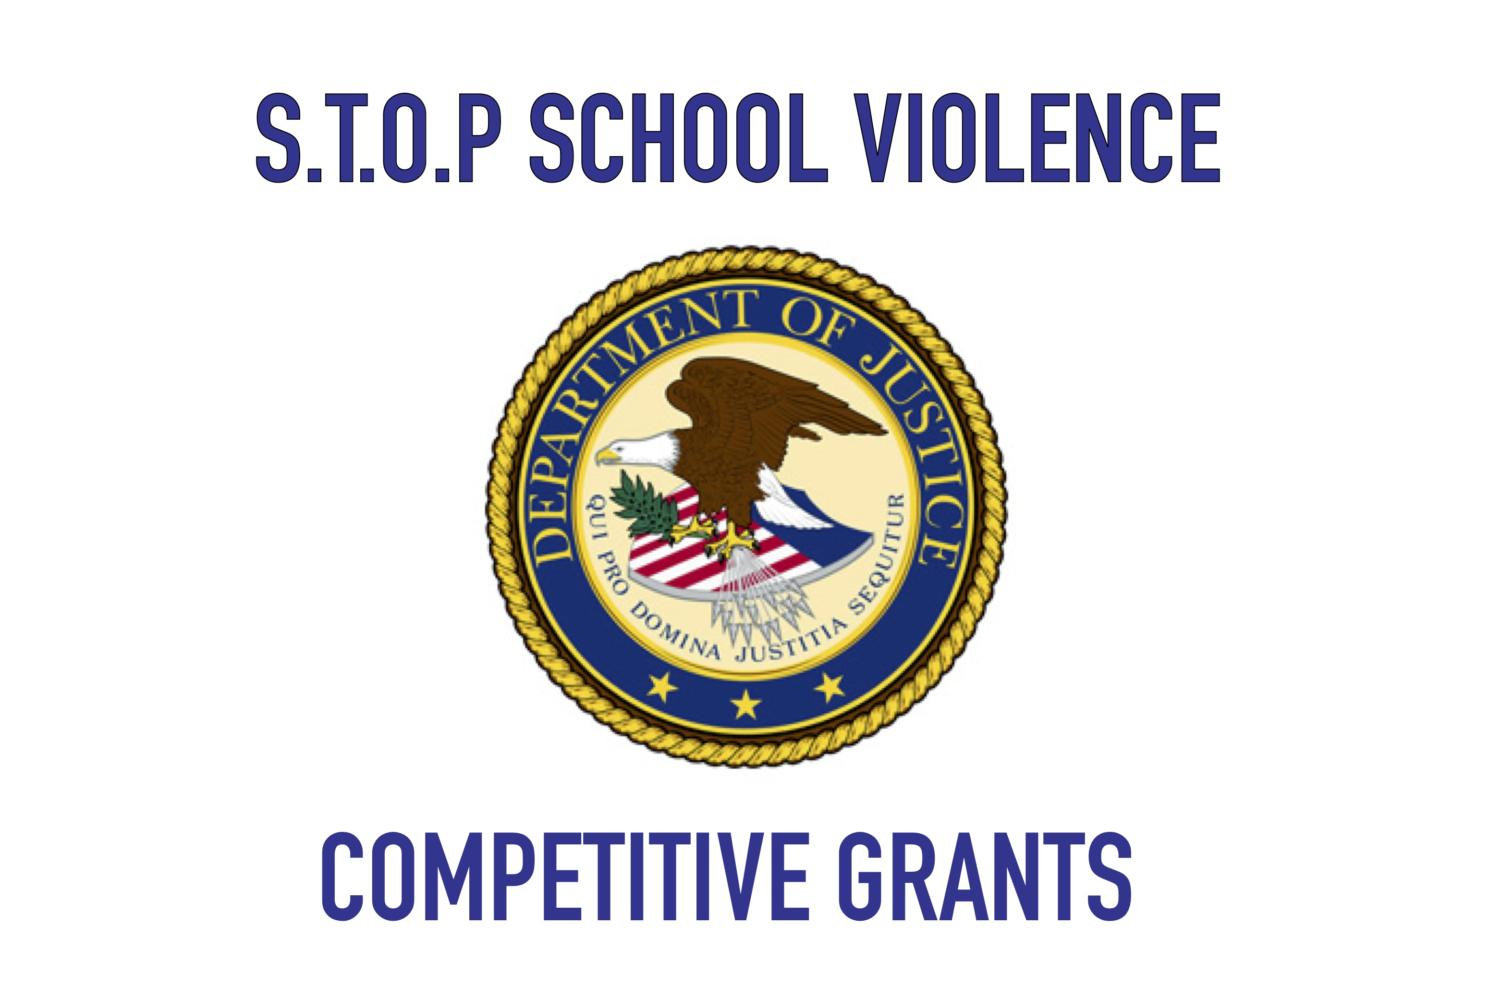 The district received four grants from the U.S. Department of Justice STOP School Violence Competitive Grants program totaling $1 million.